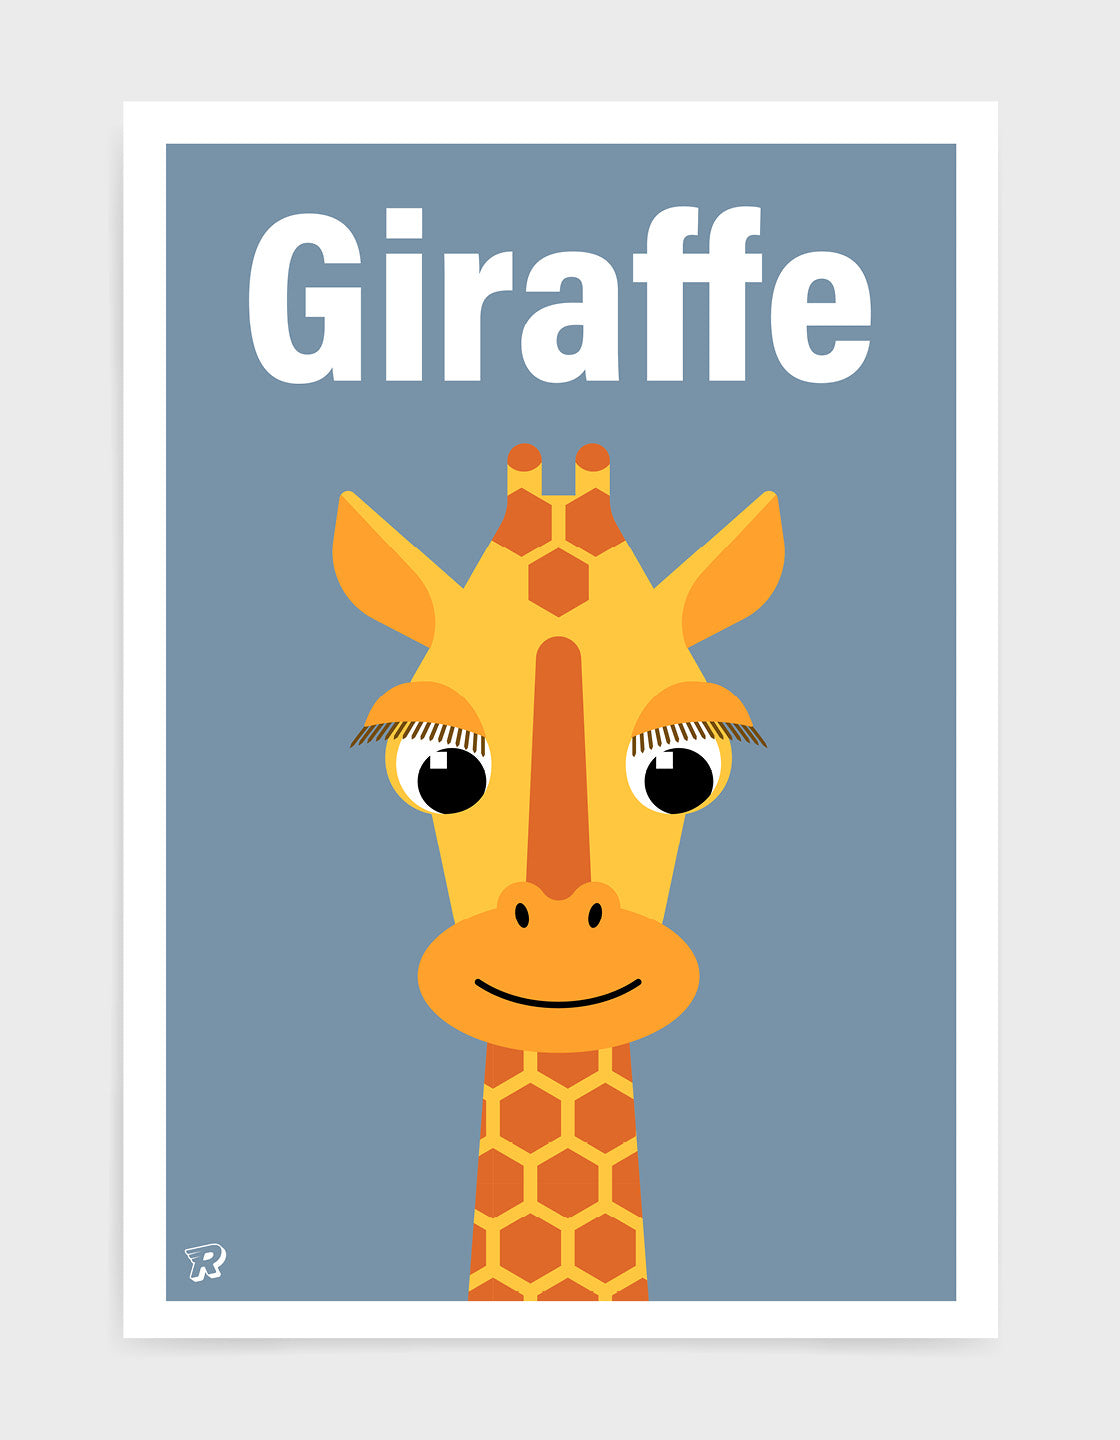 kids illustrated giraffe print with a cute giraffe head with long eyelashes against a blue background. The word giraffe is written at the top in white font